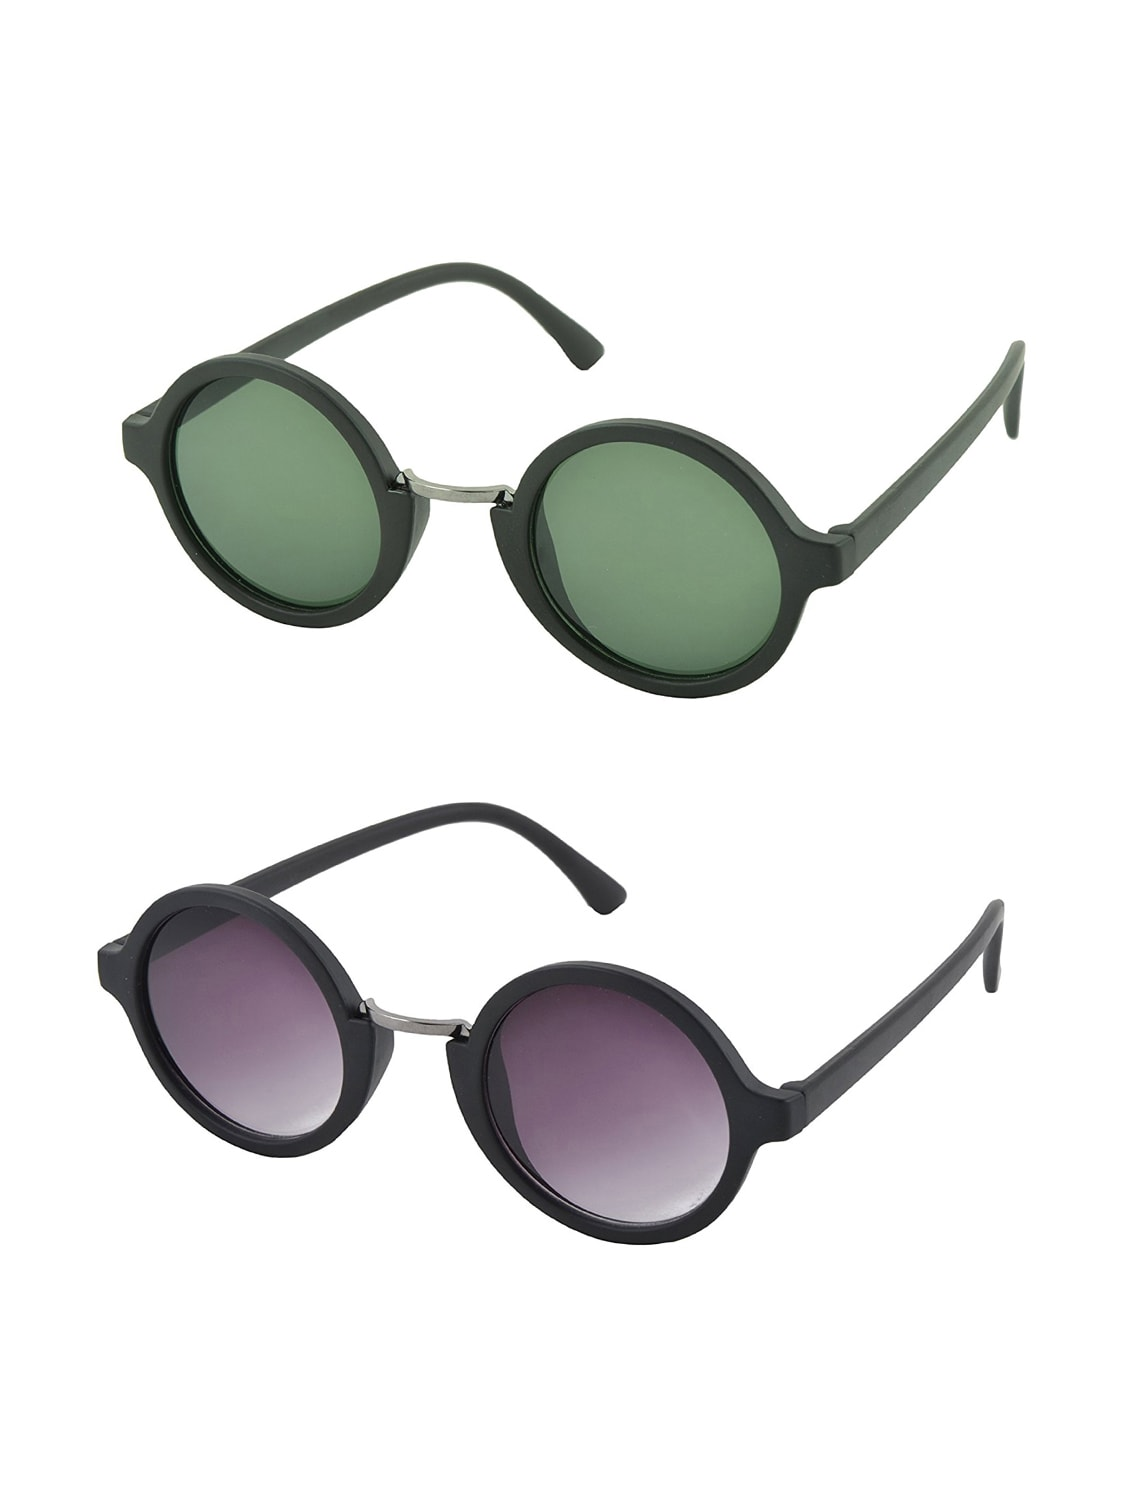 ecd098d51c Buy Aventus Stylish Sunglasses Combo-black   Green Round Sunglasses For Men  Women by Aventus - Online shopping for Sunglasses in India